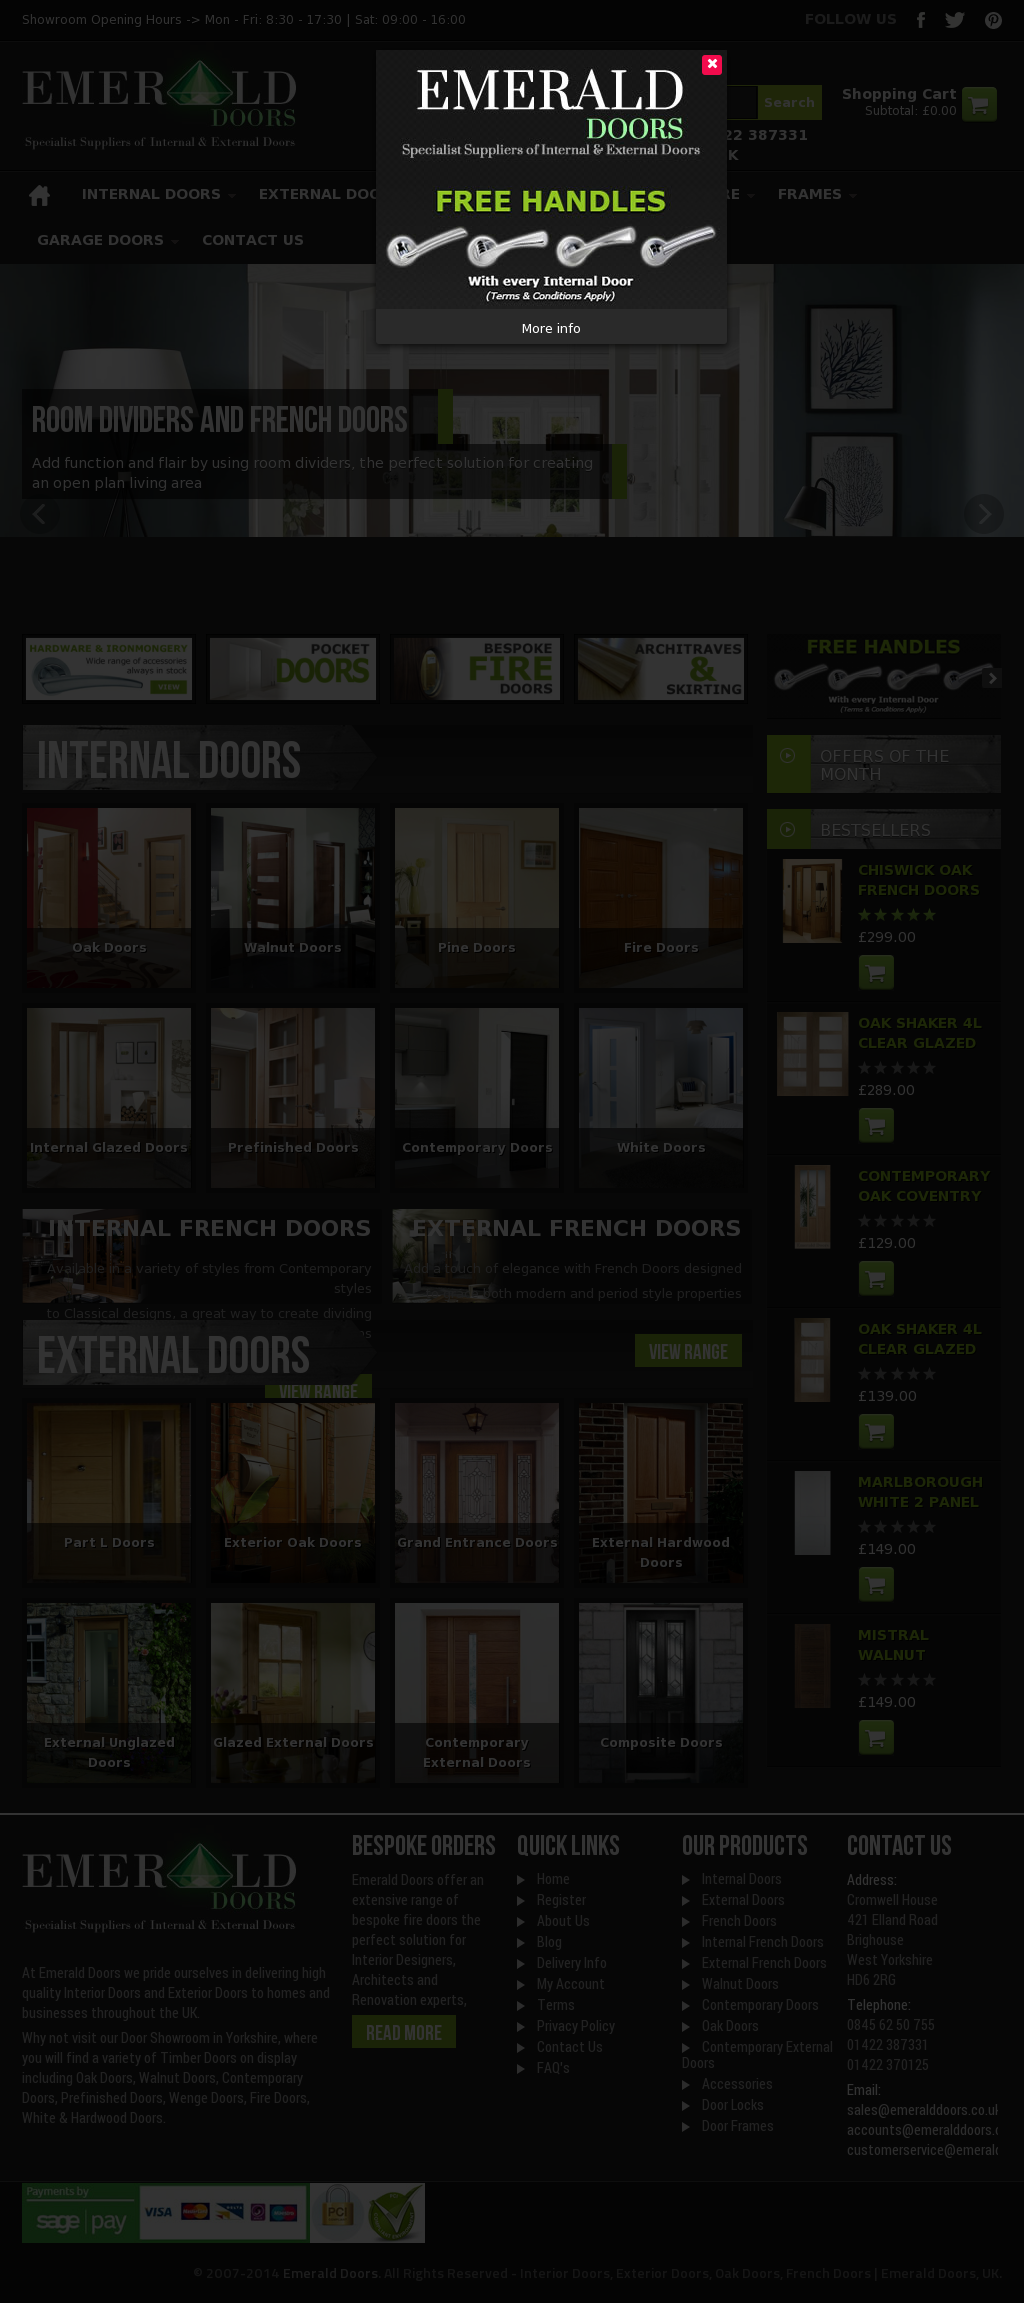 & Emerald Doors Competitors Revenue and Employees - Owler Company Profile